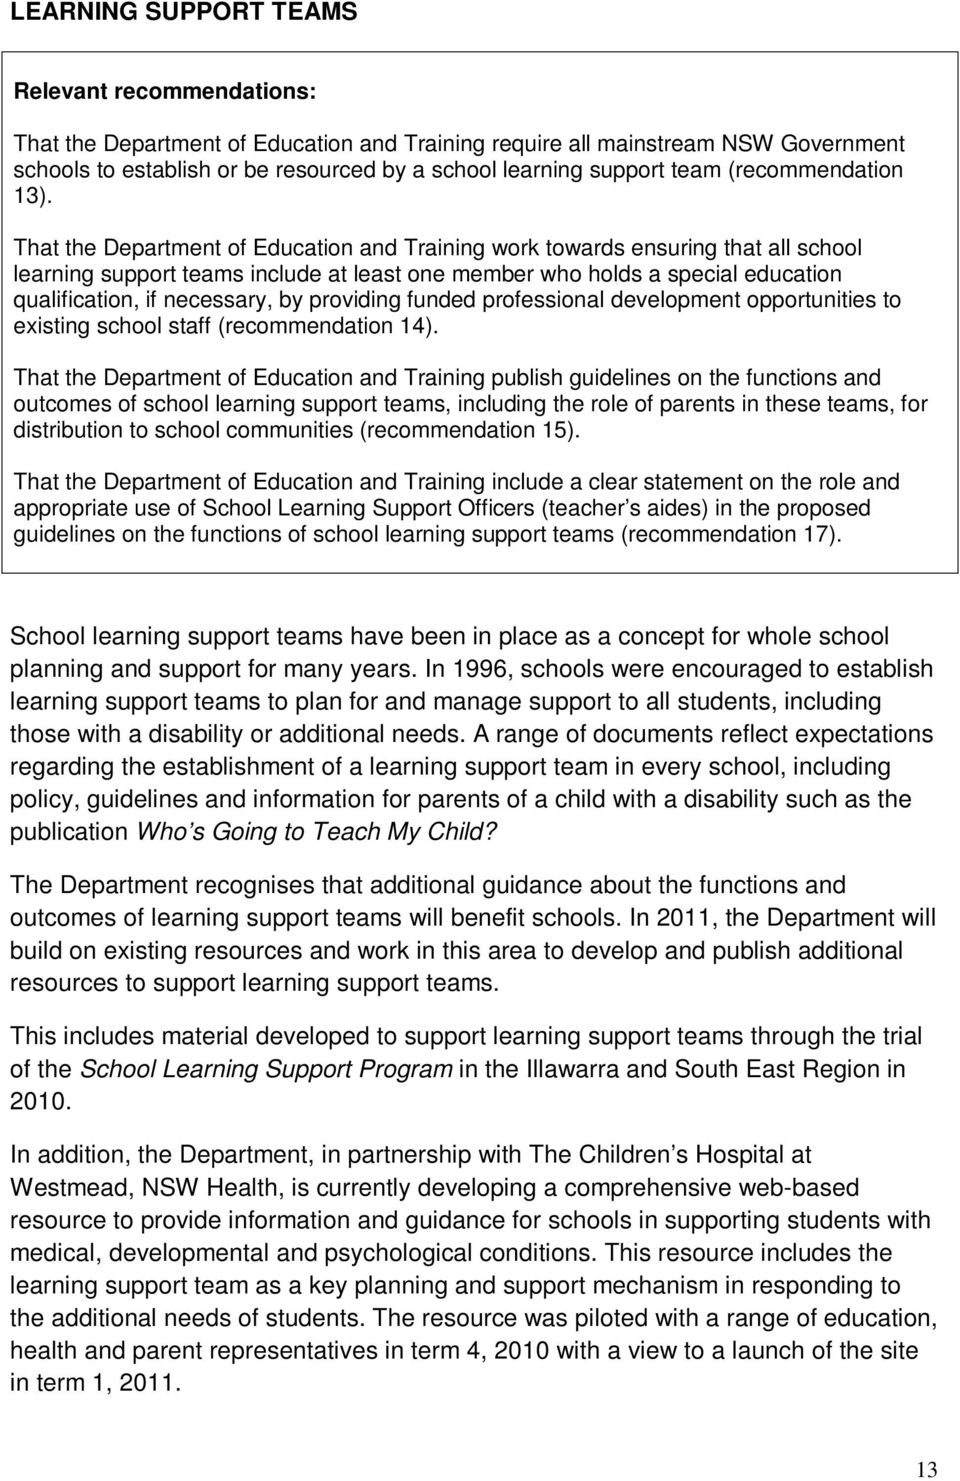 That the Department of Education and Training work towards ensuring that all school learning support teams include at least one member who holds a special education qualification, if necessary, by